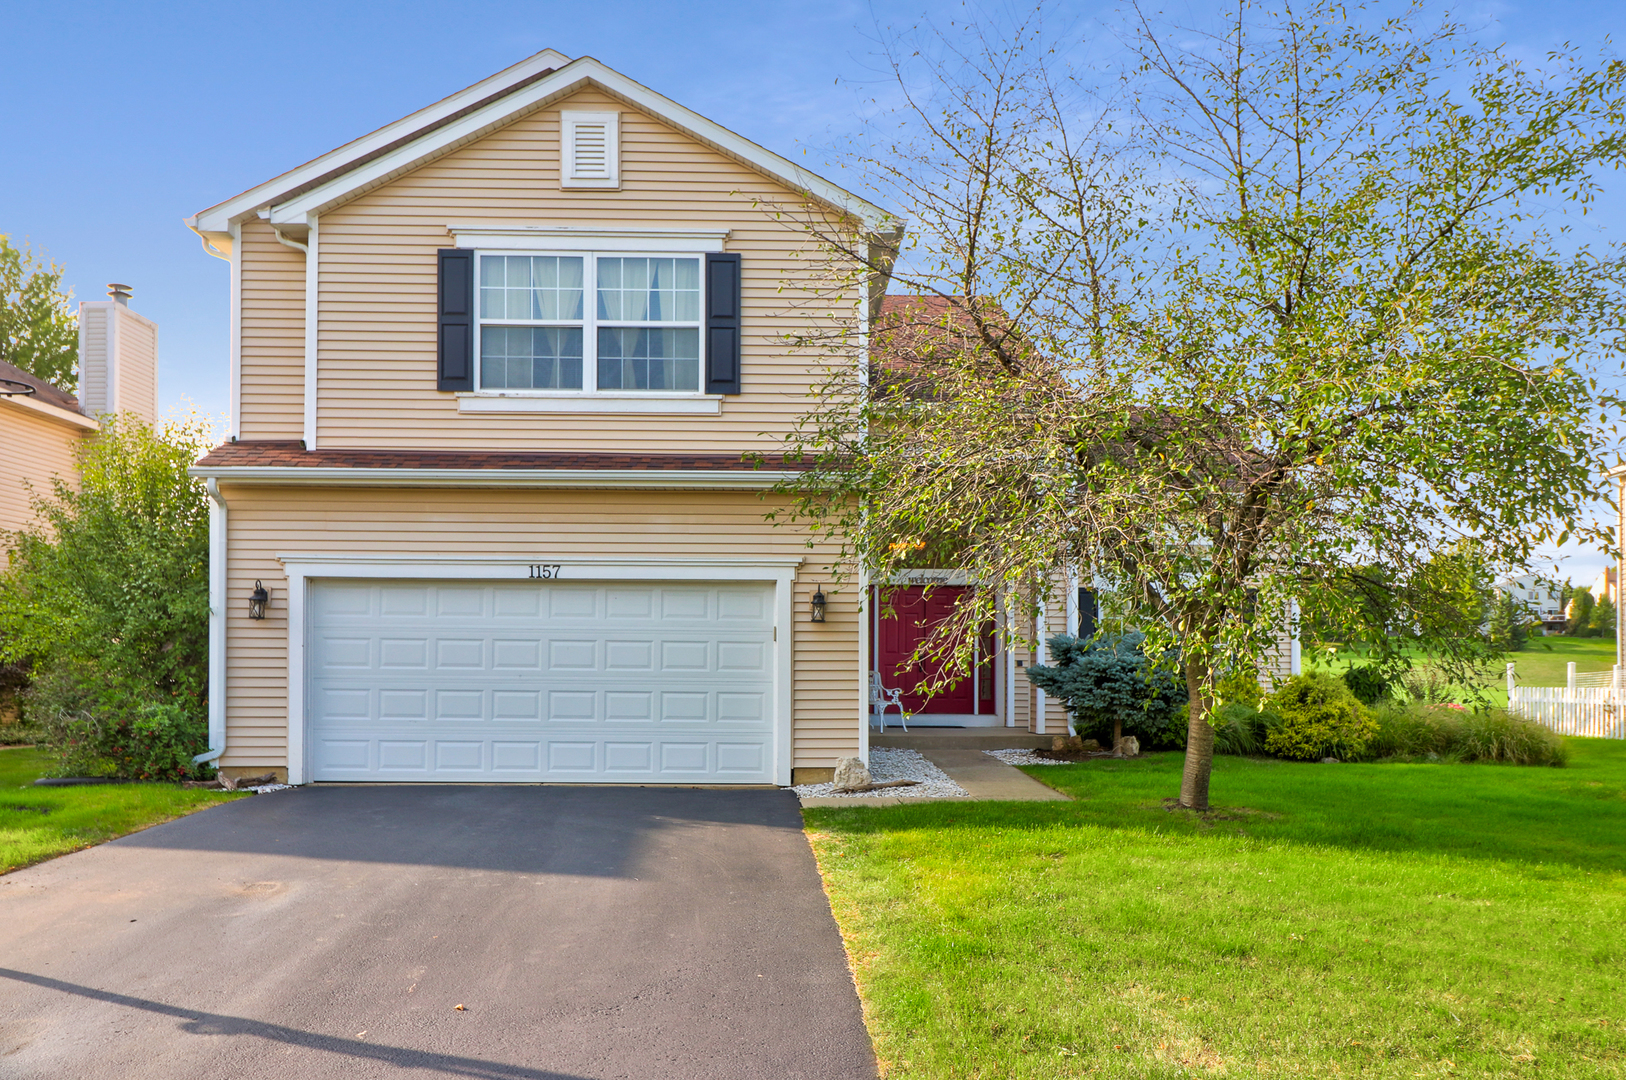 1157 Heavens Gate, Lake In The Hills, IL 60156